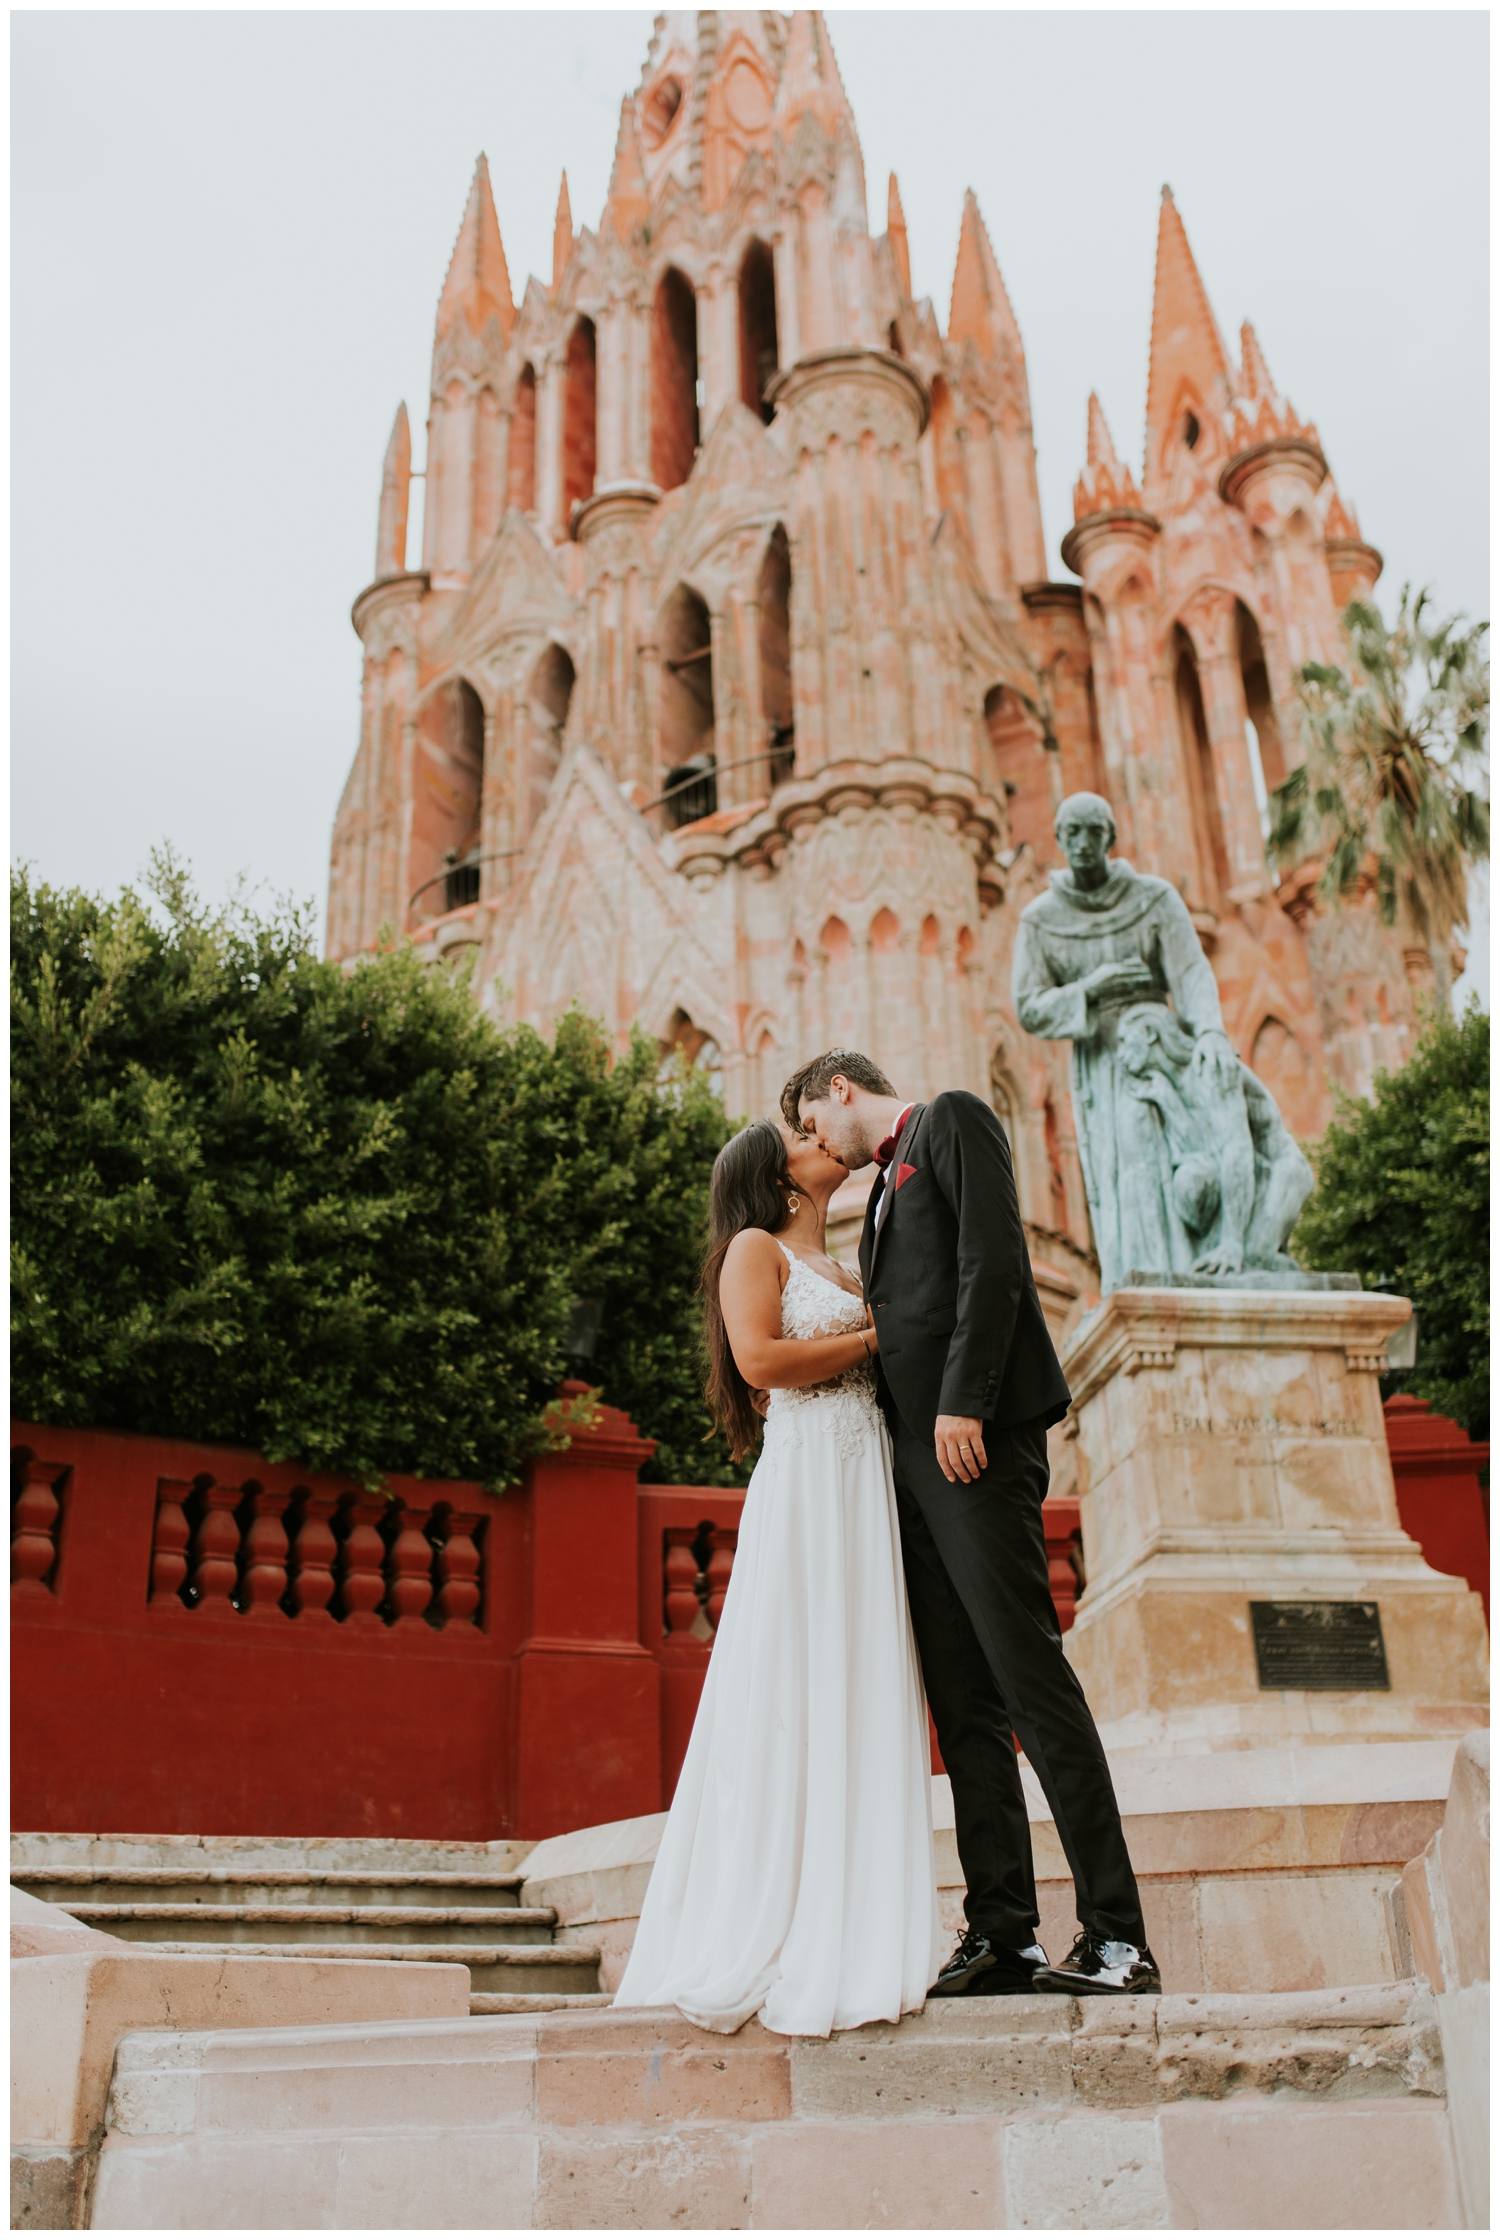 Shane+Sofia, San Miguel de Allende Wedding, Mexico Wedding, Contista Productions Wedding Photography_0220.jpg